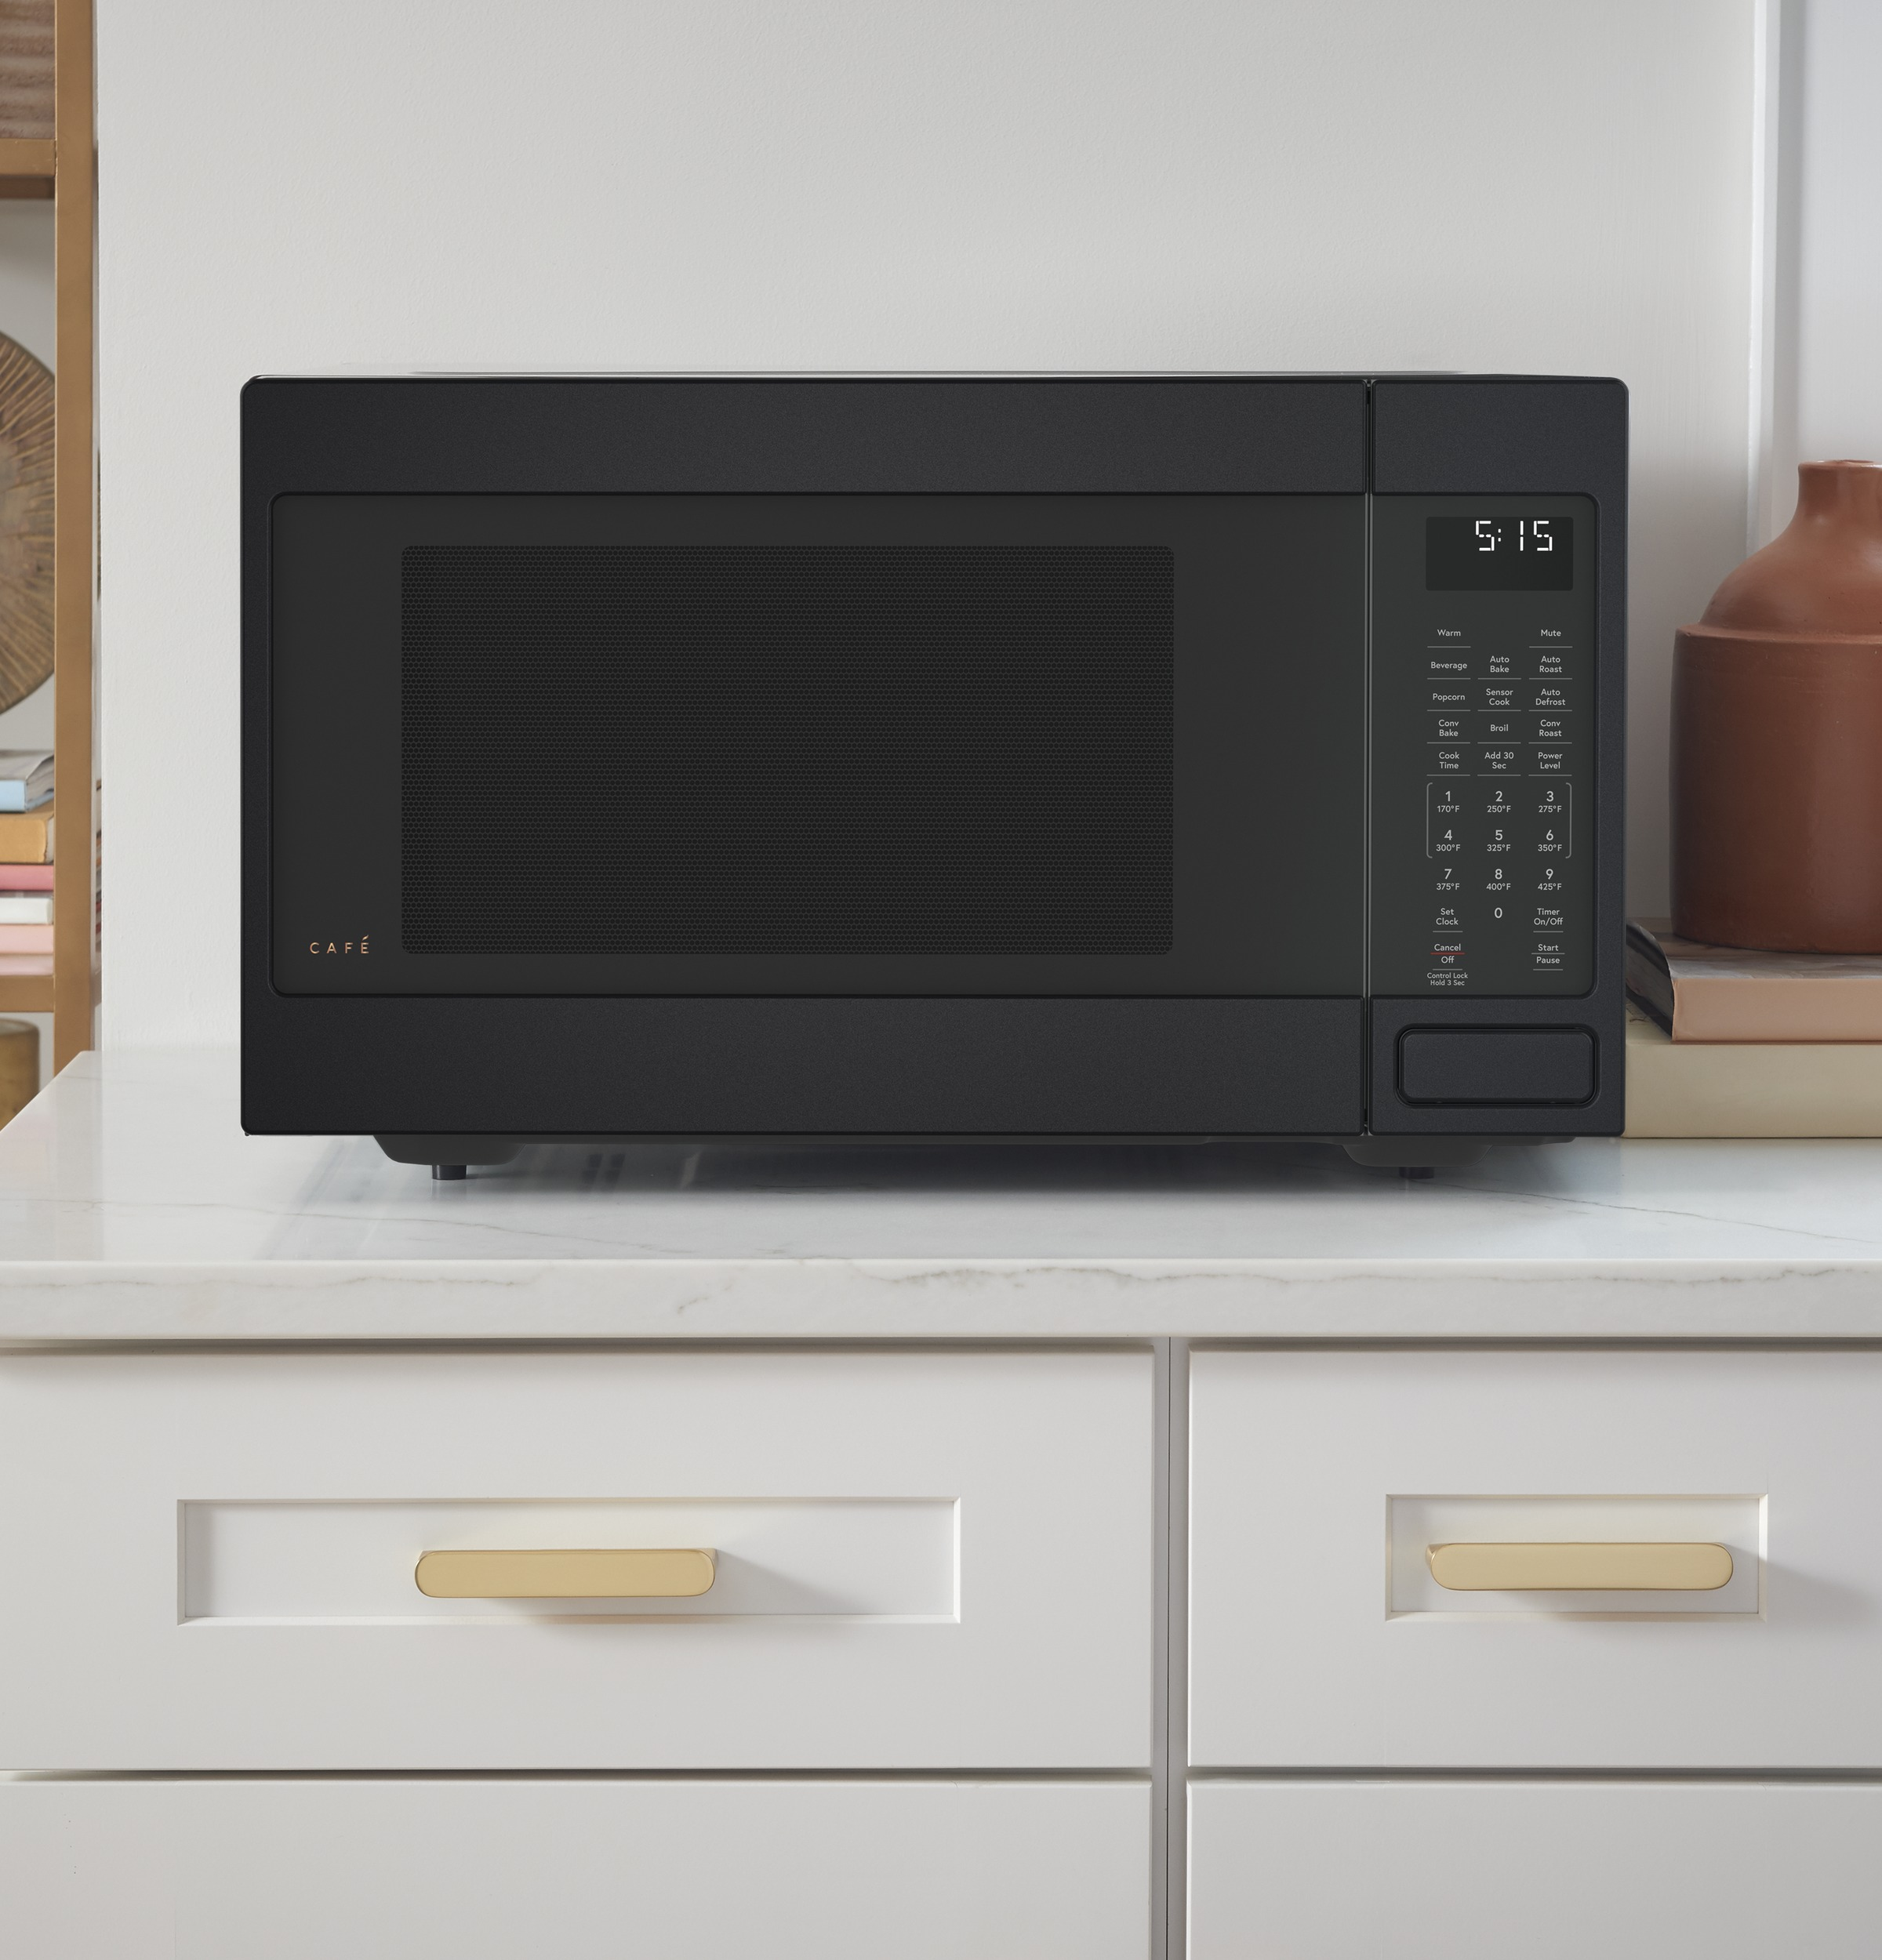 Ceb515p3mds Overview Cafe 1 5 Cu Ft Smart Countertop